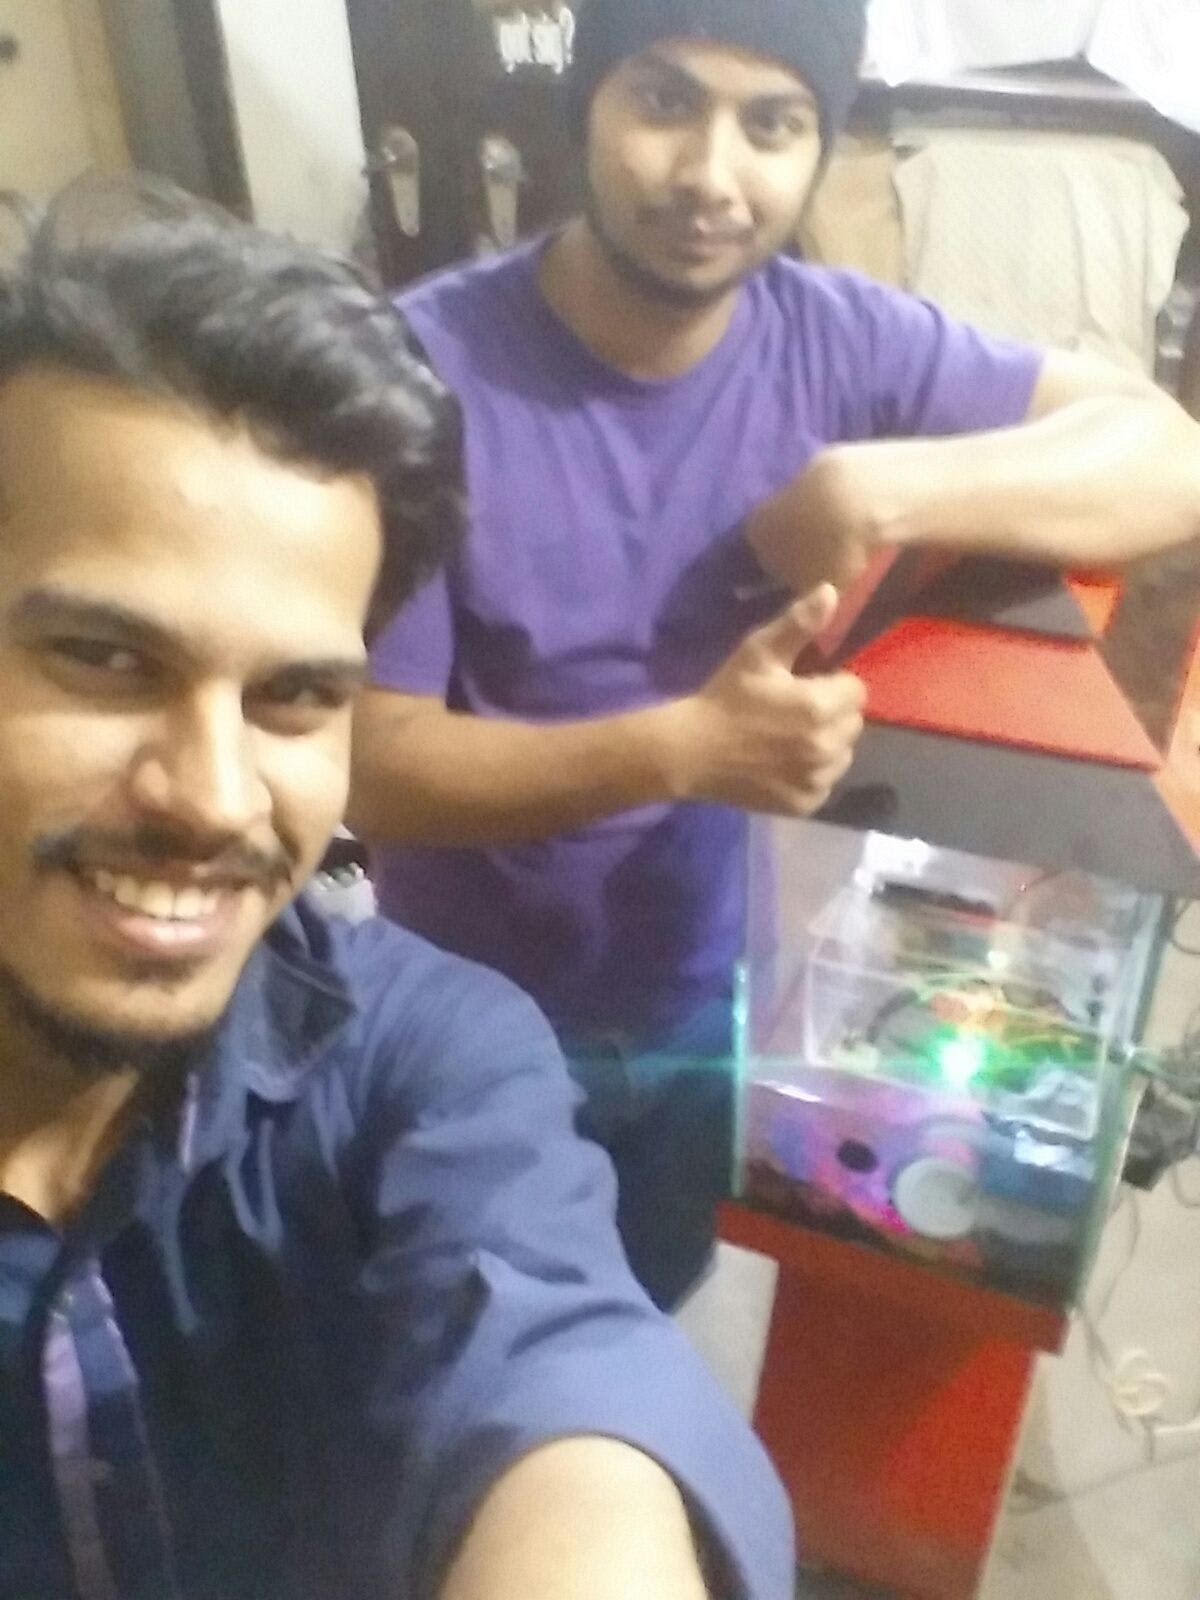 Fig 32: Selfie with the successful project